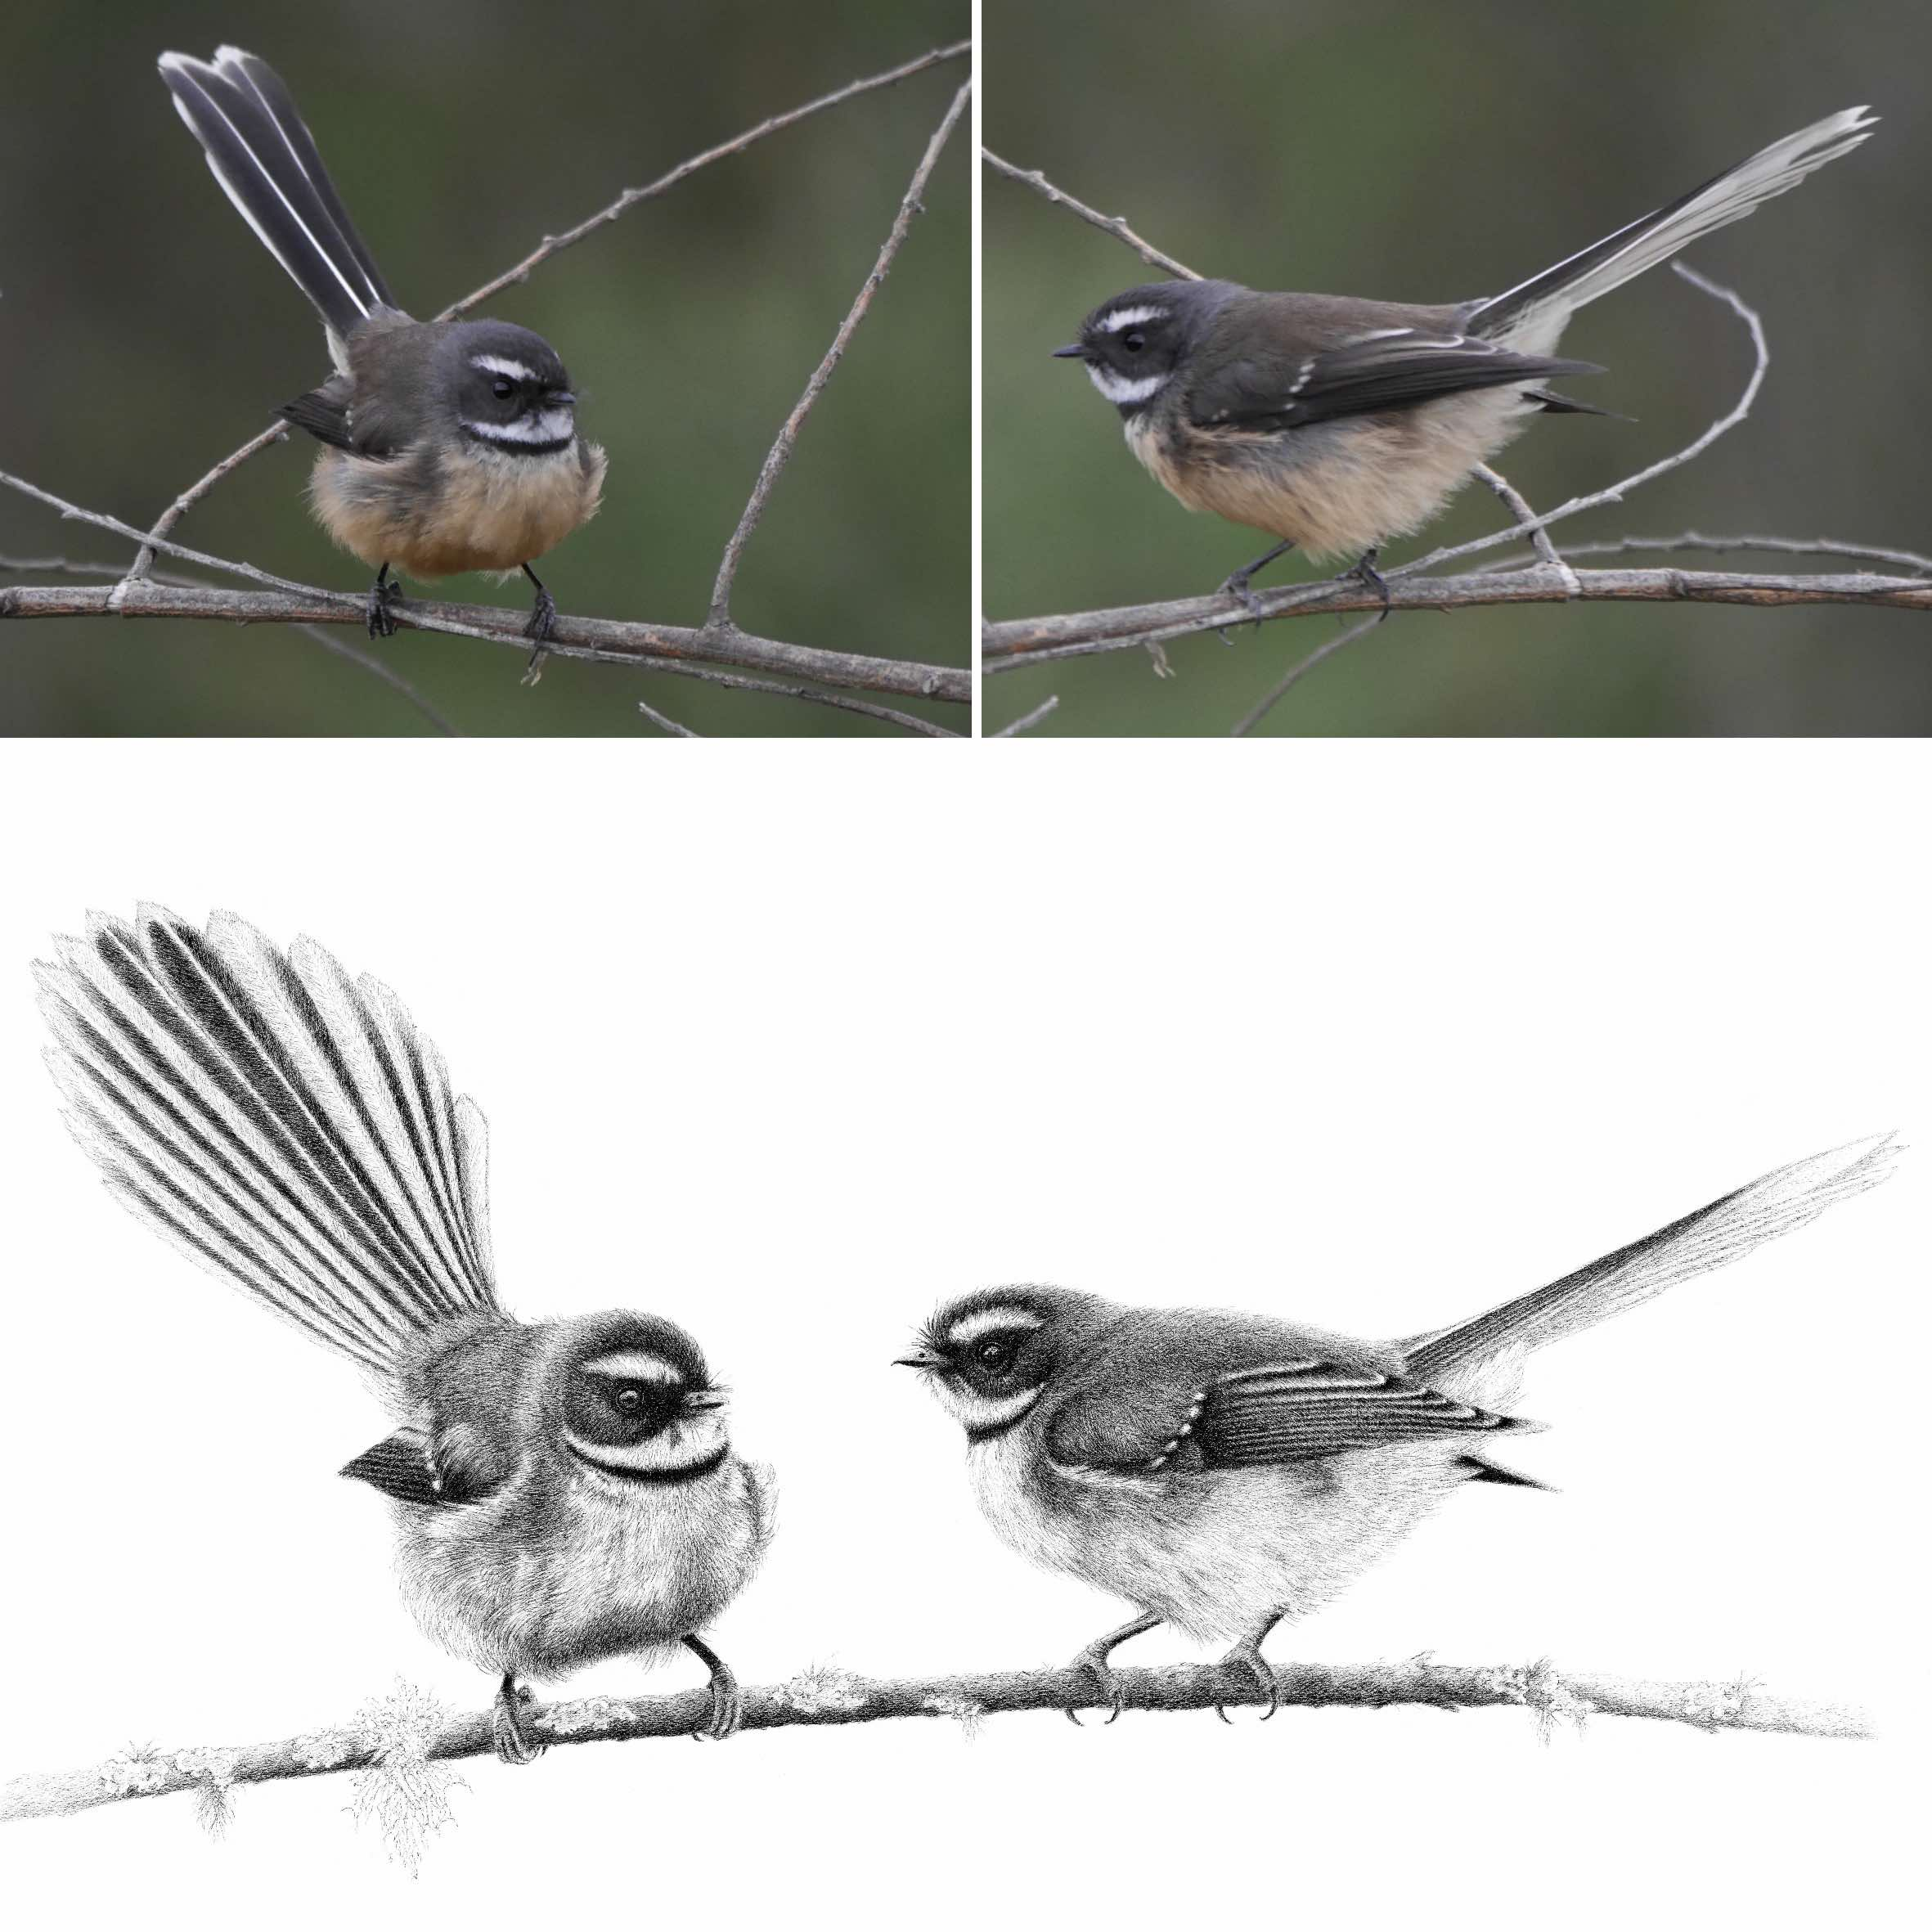 Fantail photos and artwork.jpg